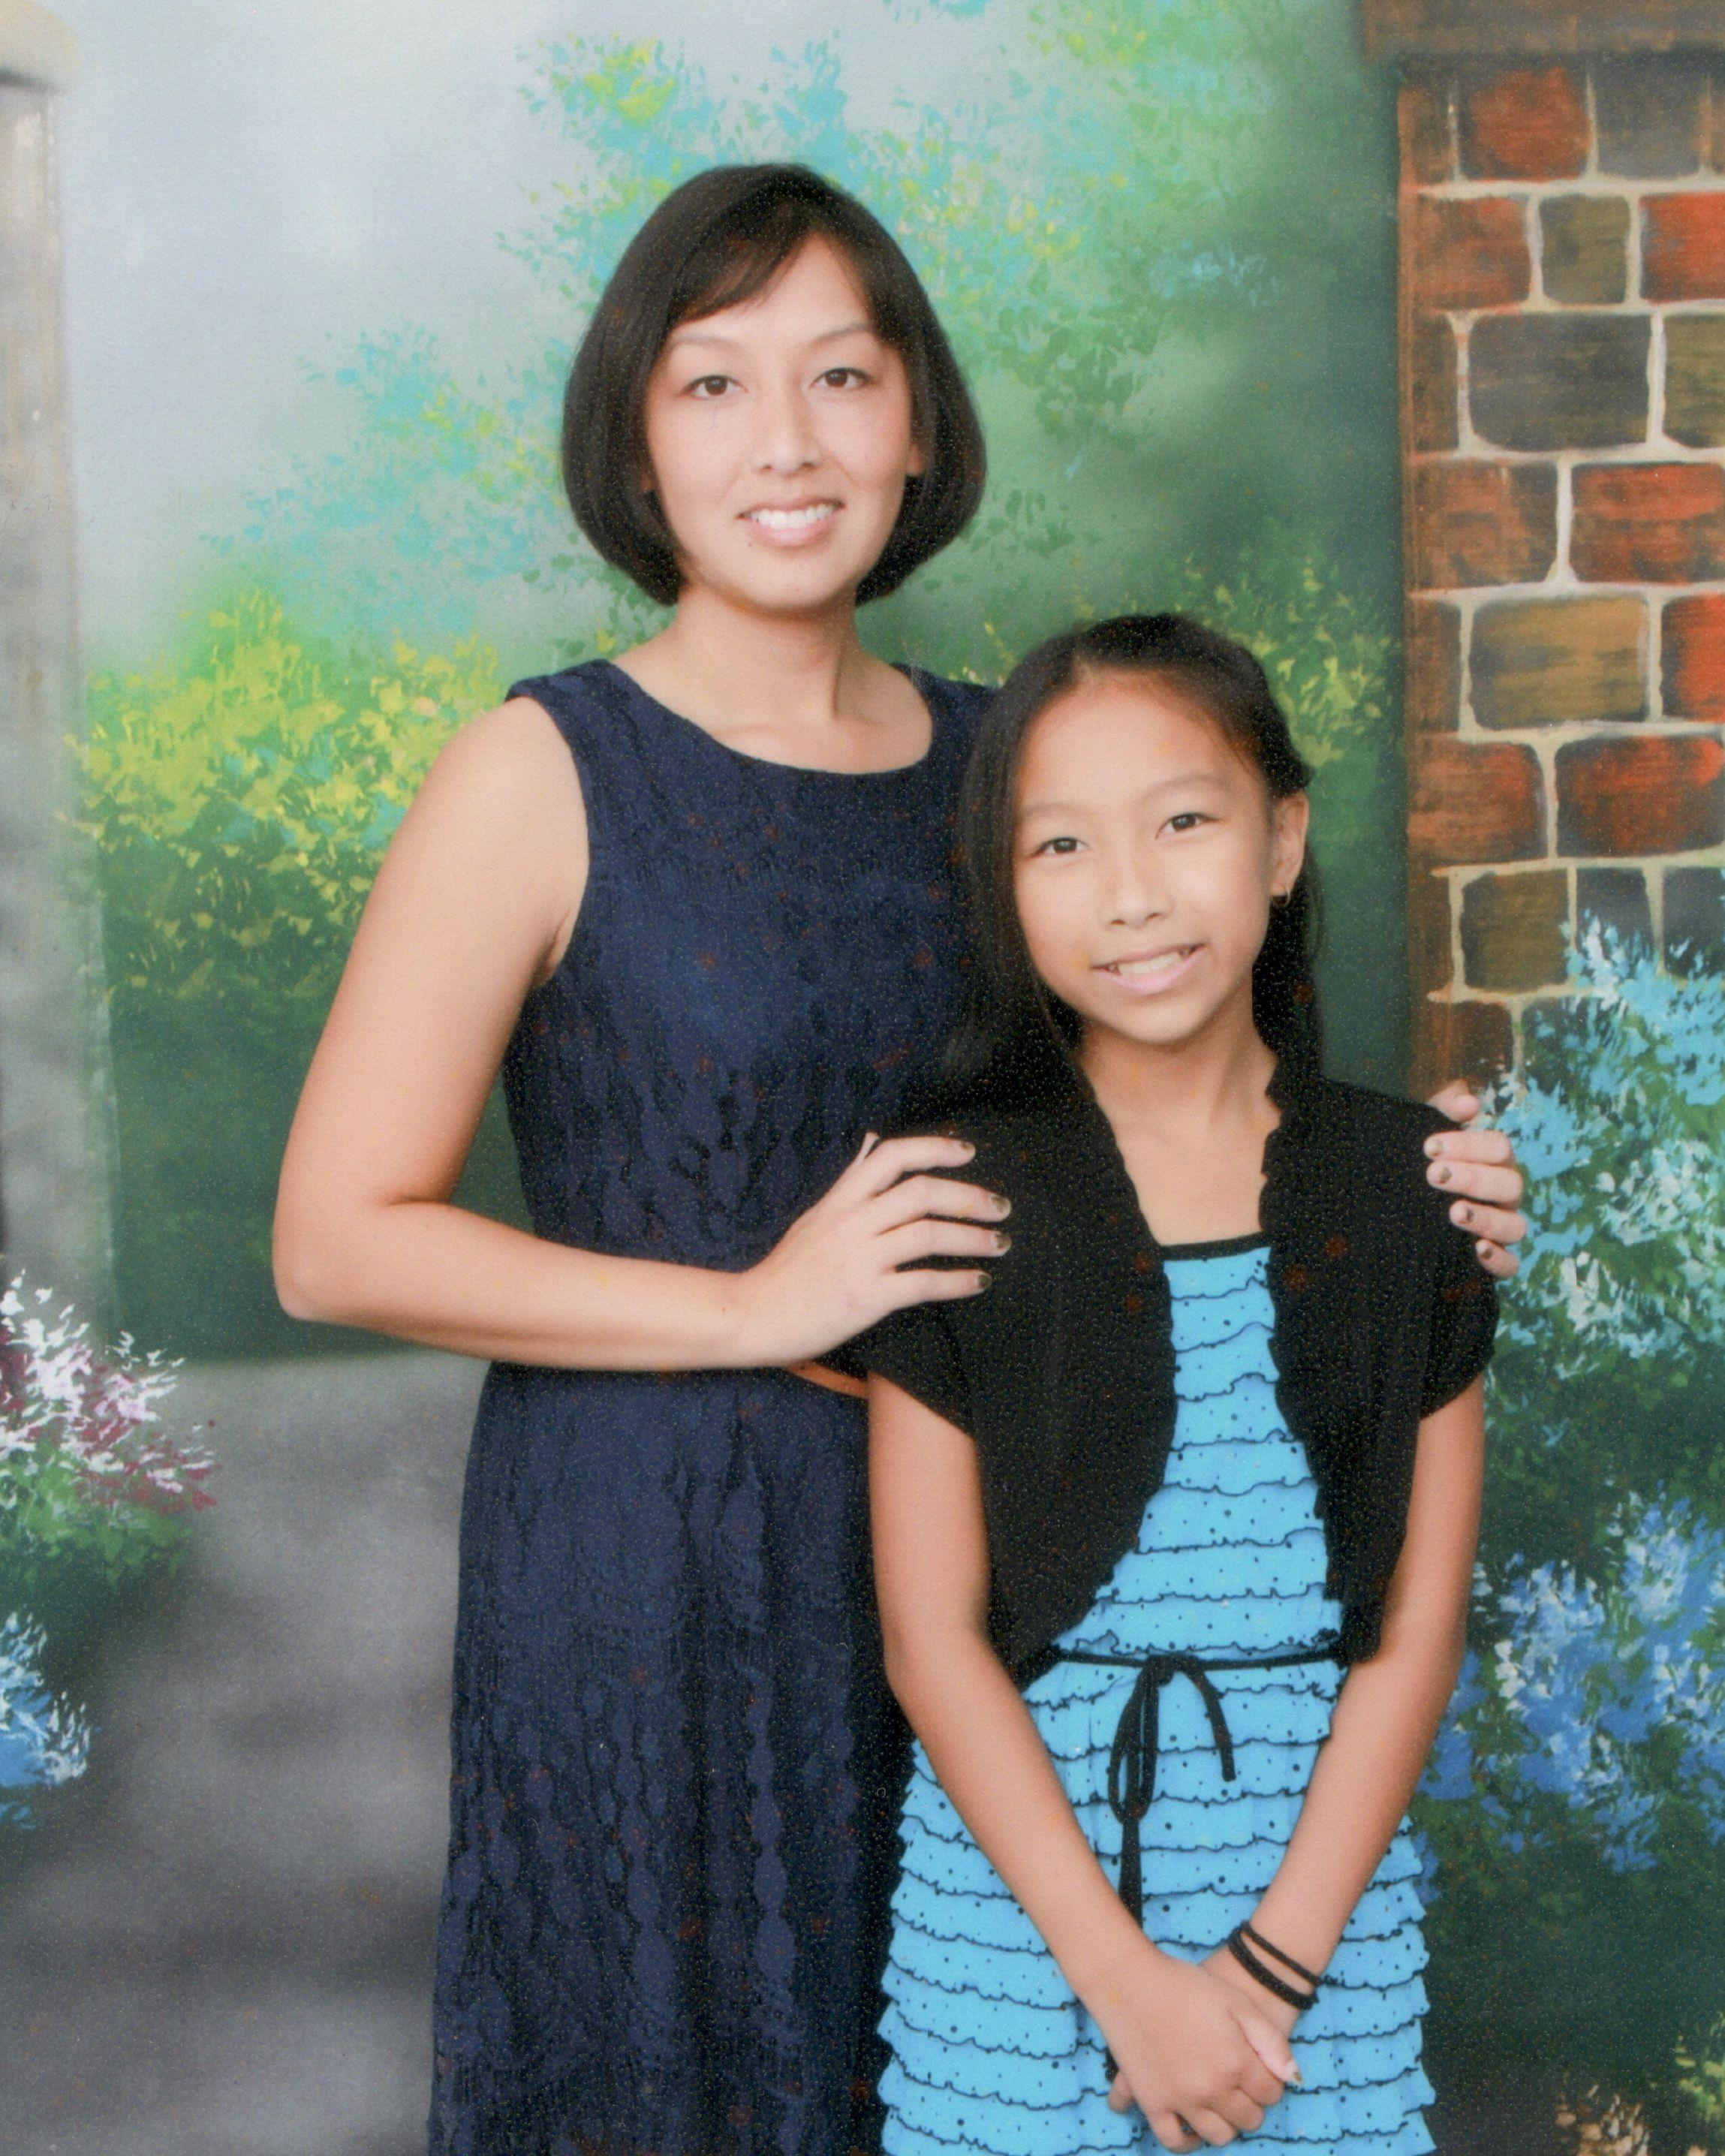 Chua and her daughter.